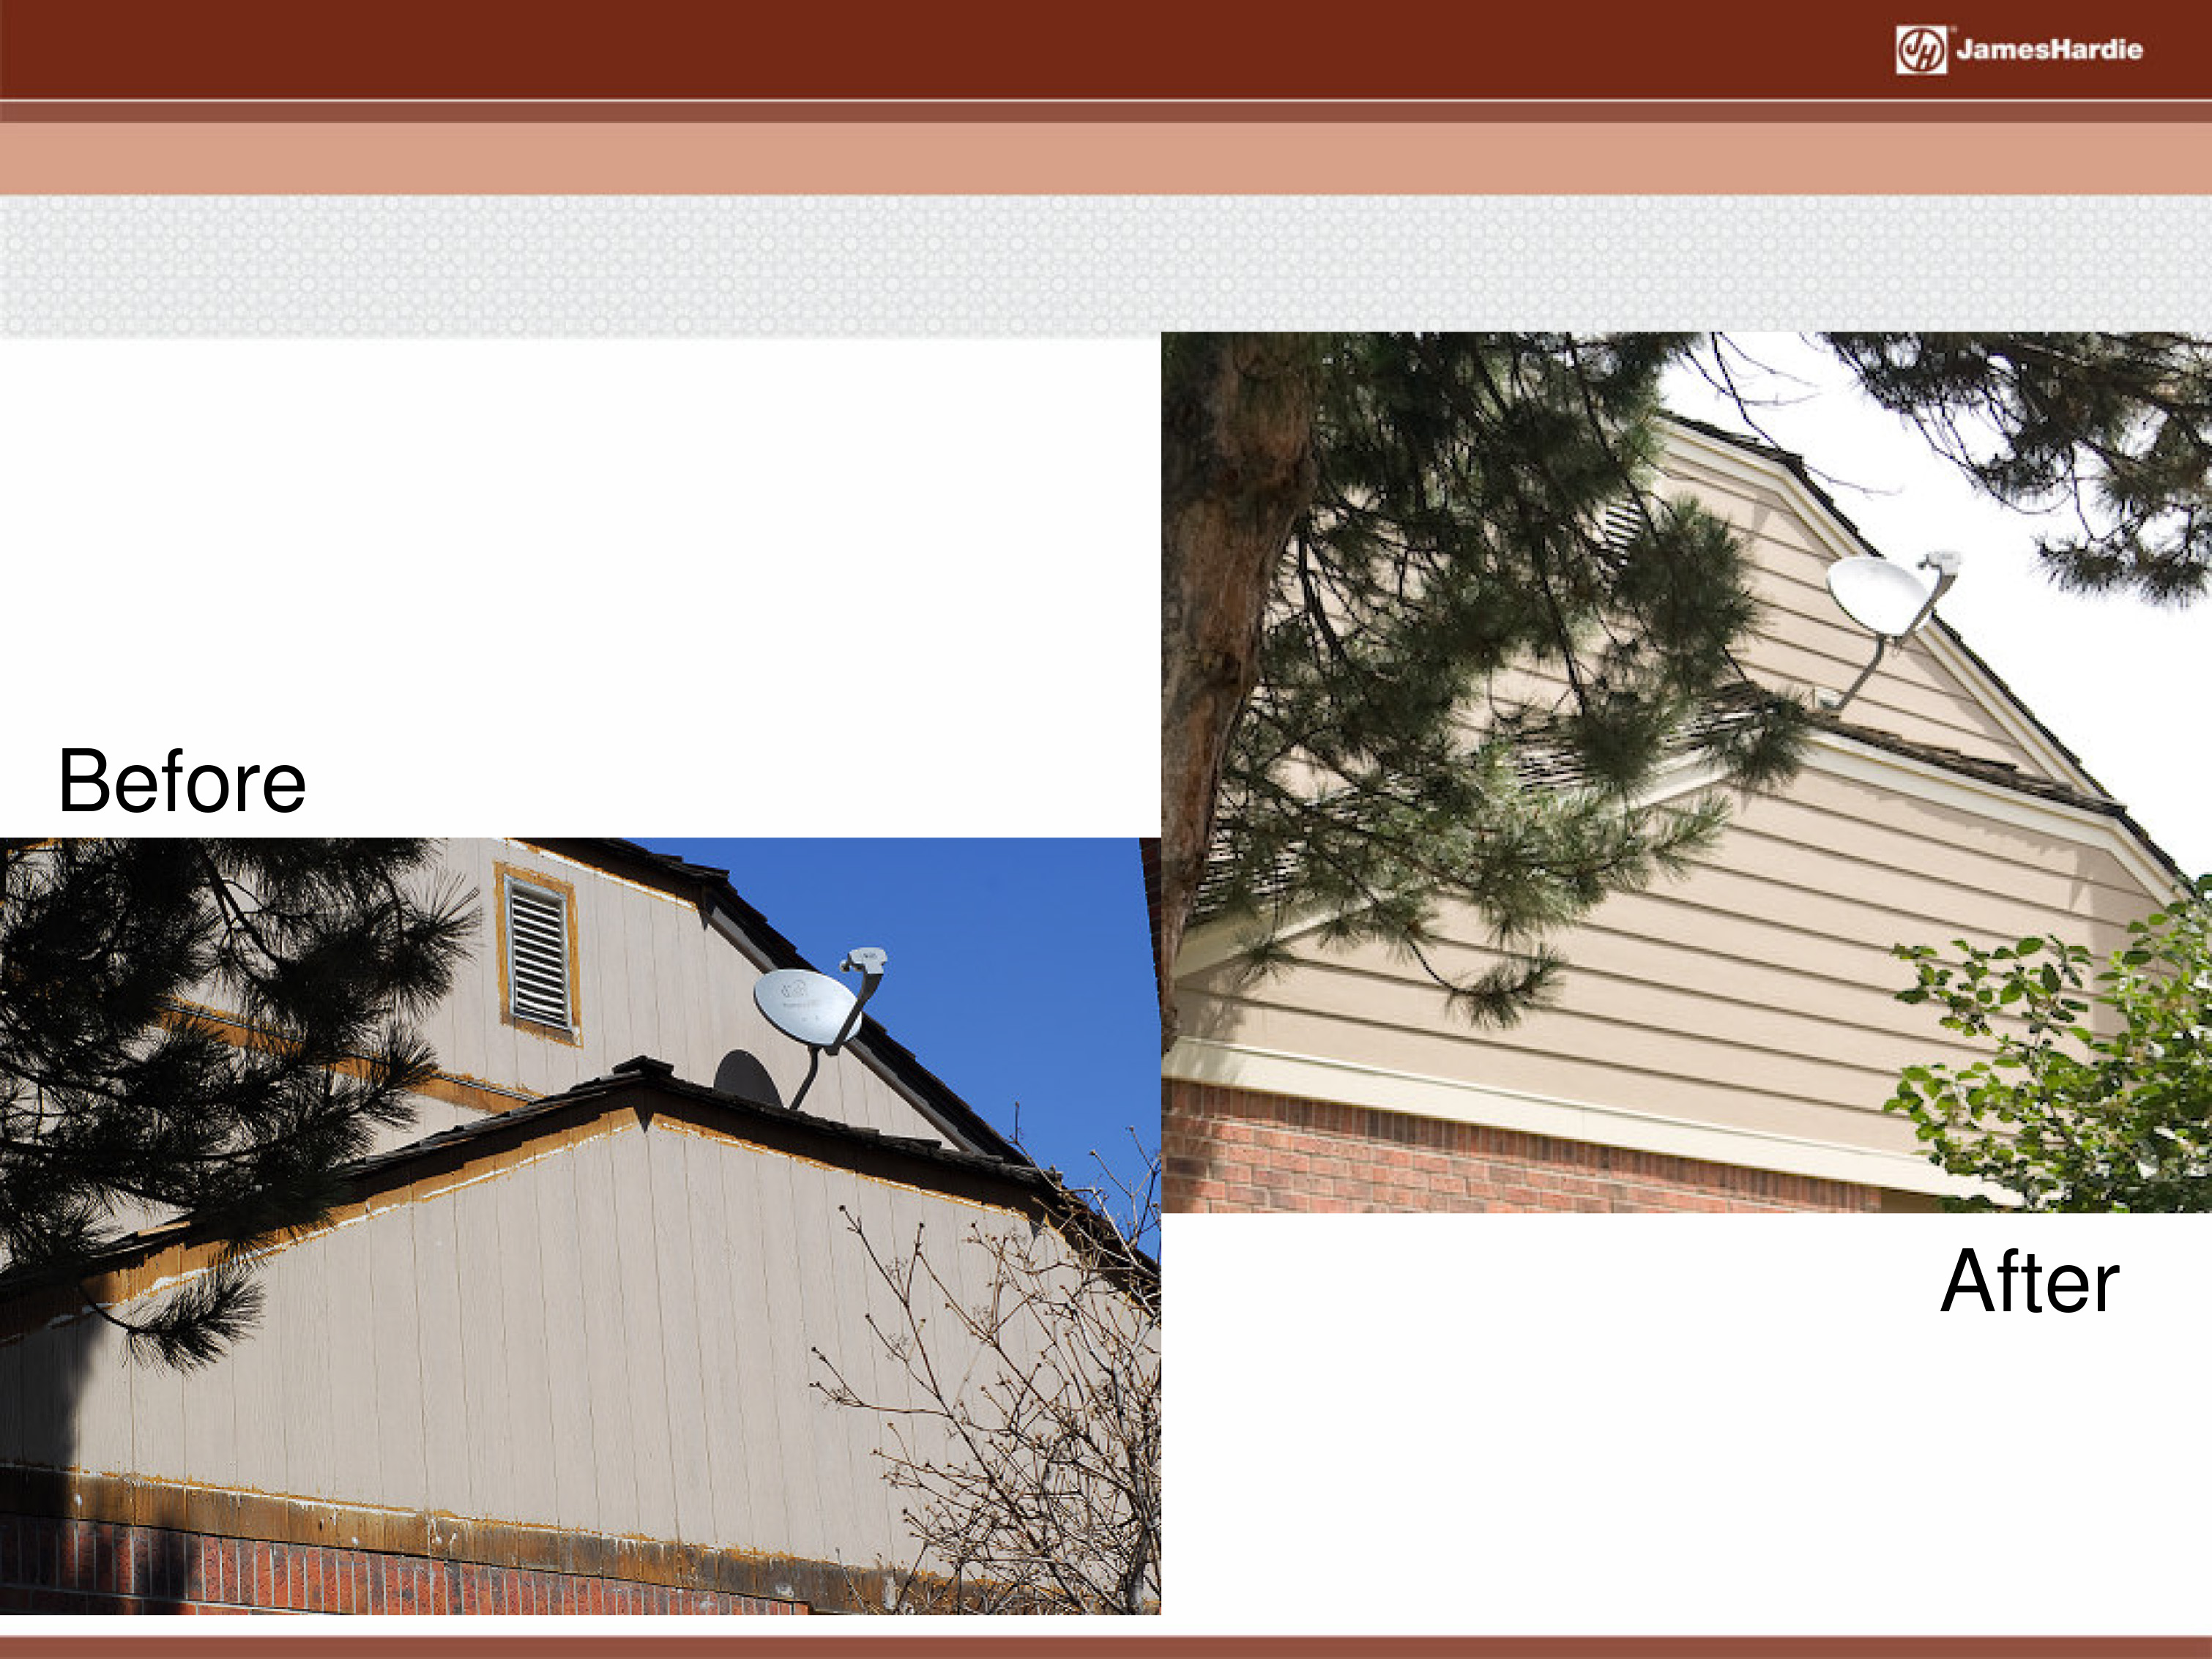 Before and After James Hardie Siding 18